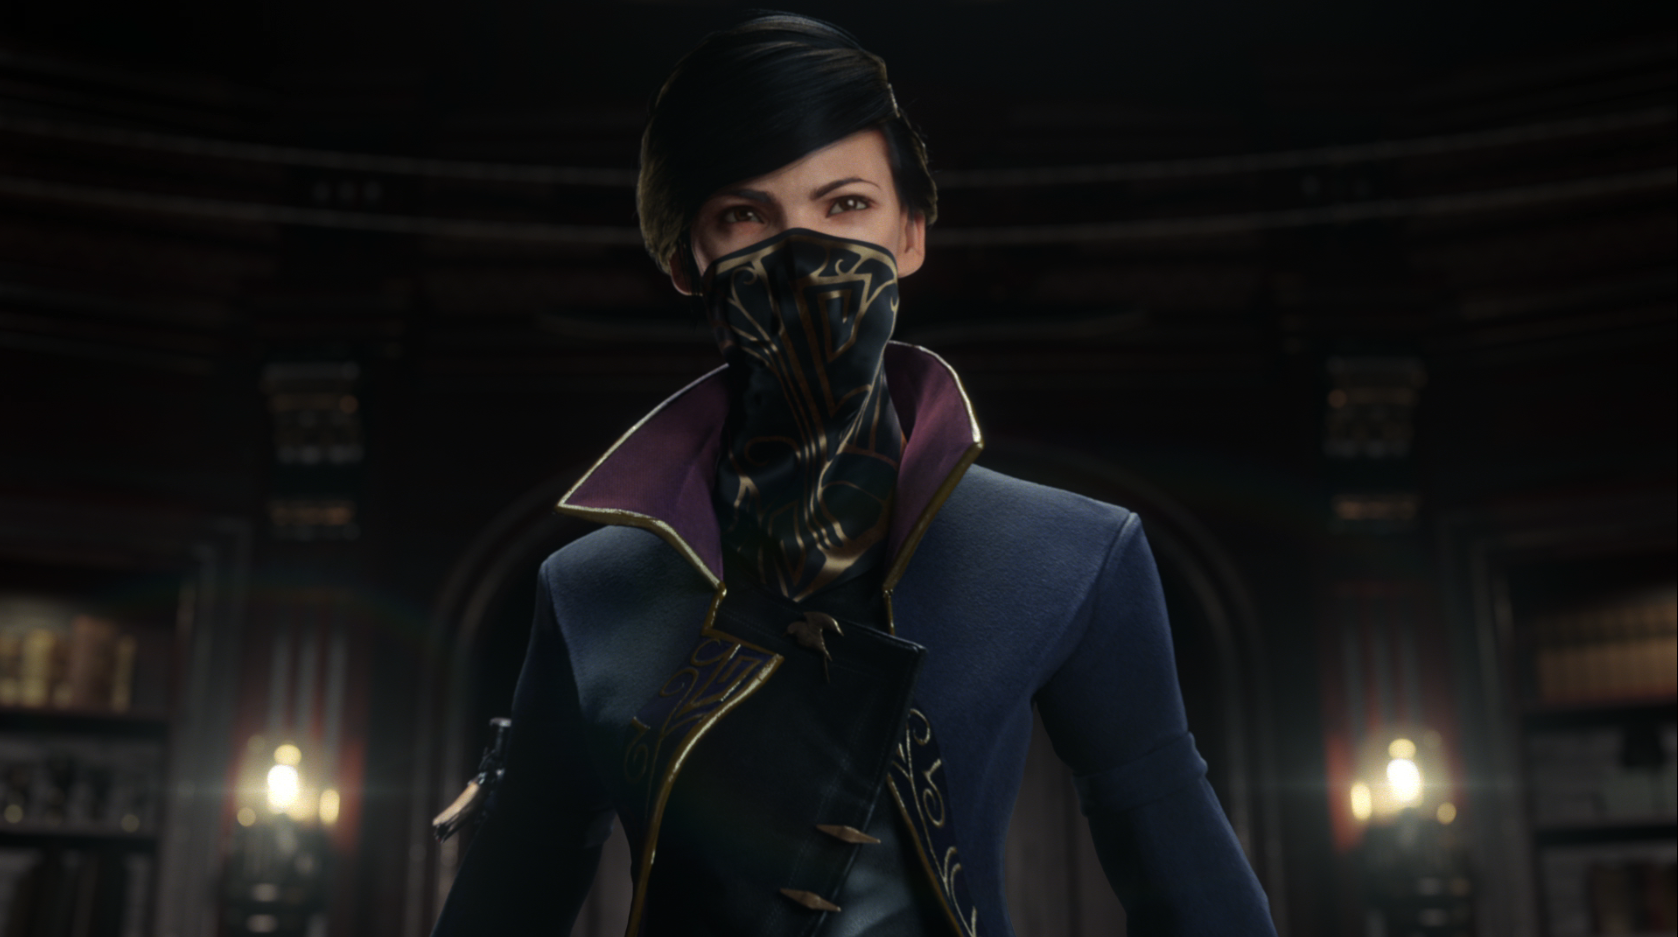 Emily, the main character, is wearing a blue coat with a purple, high-necked collar. She is also wearing a black mask that has gold decoration on it; it covers the bottom half of her face. Behind her is a wall of bookshelves and candles.